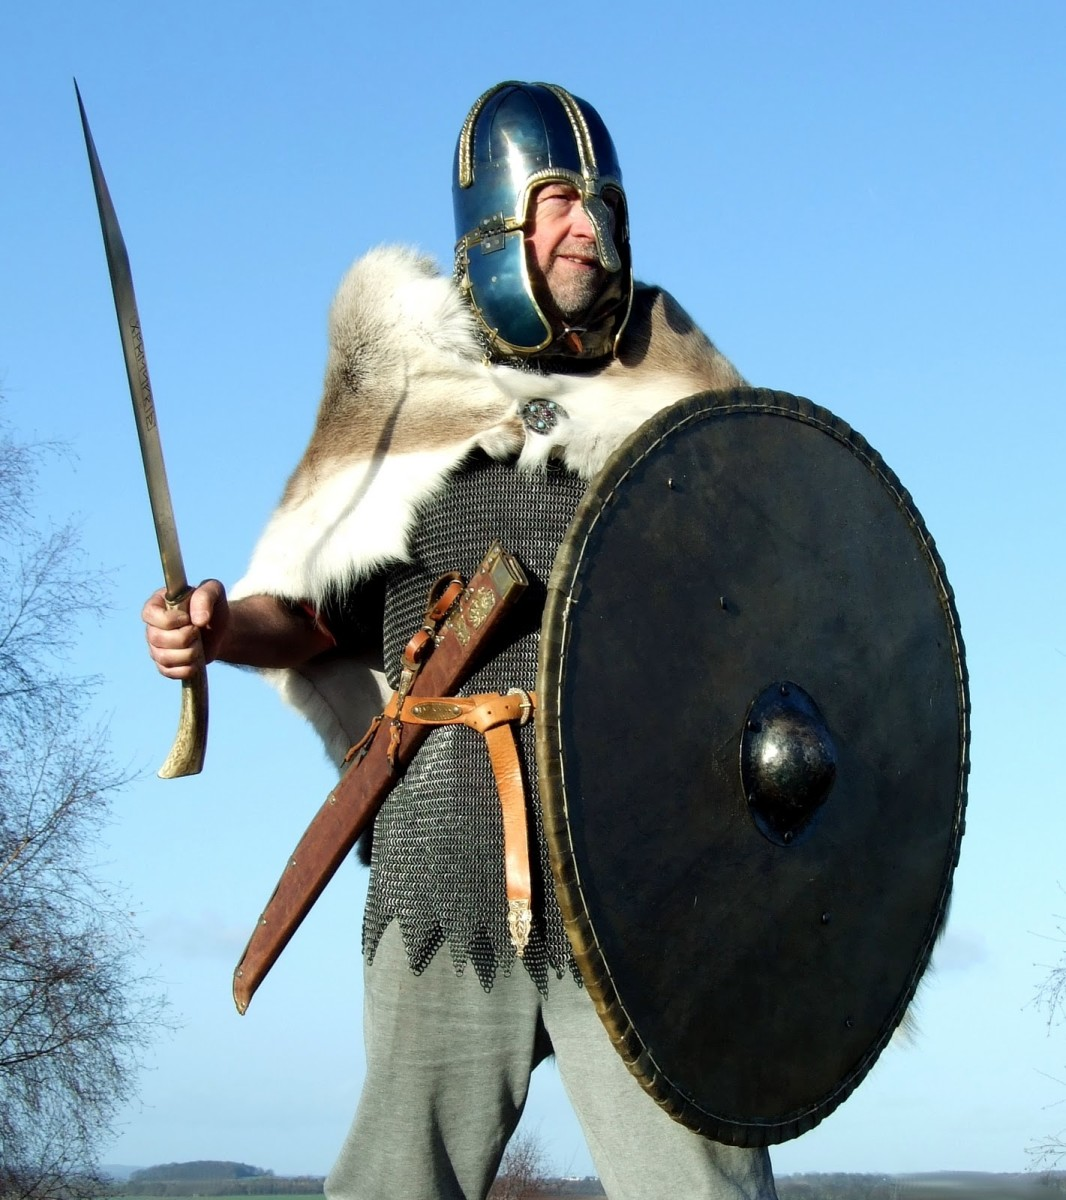 Mercian thegn in war gear - the helm shape is similar to one found at Coppergate, York